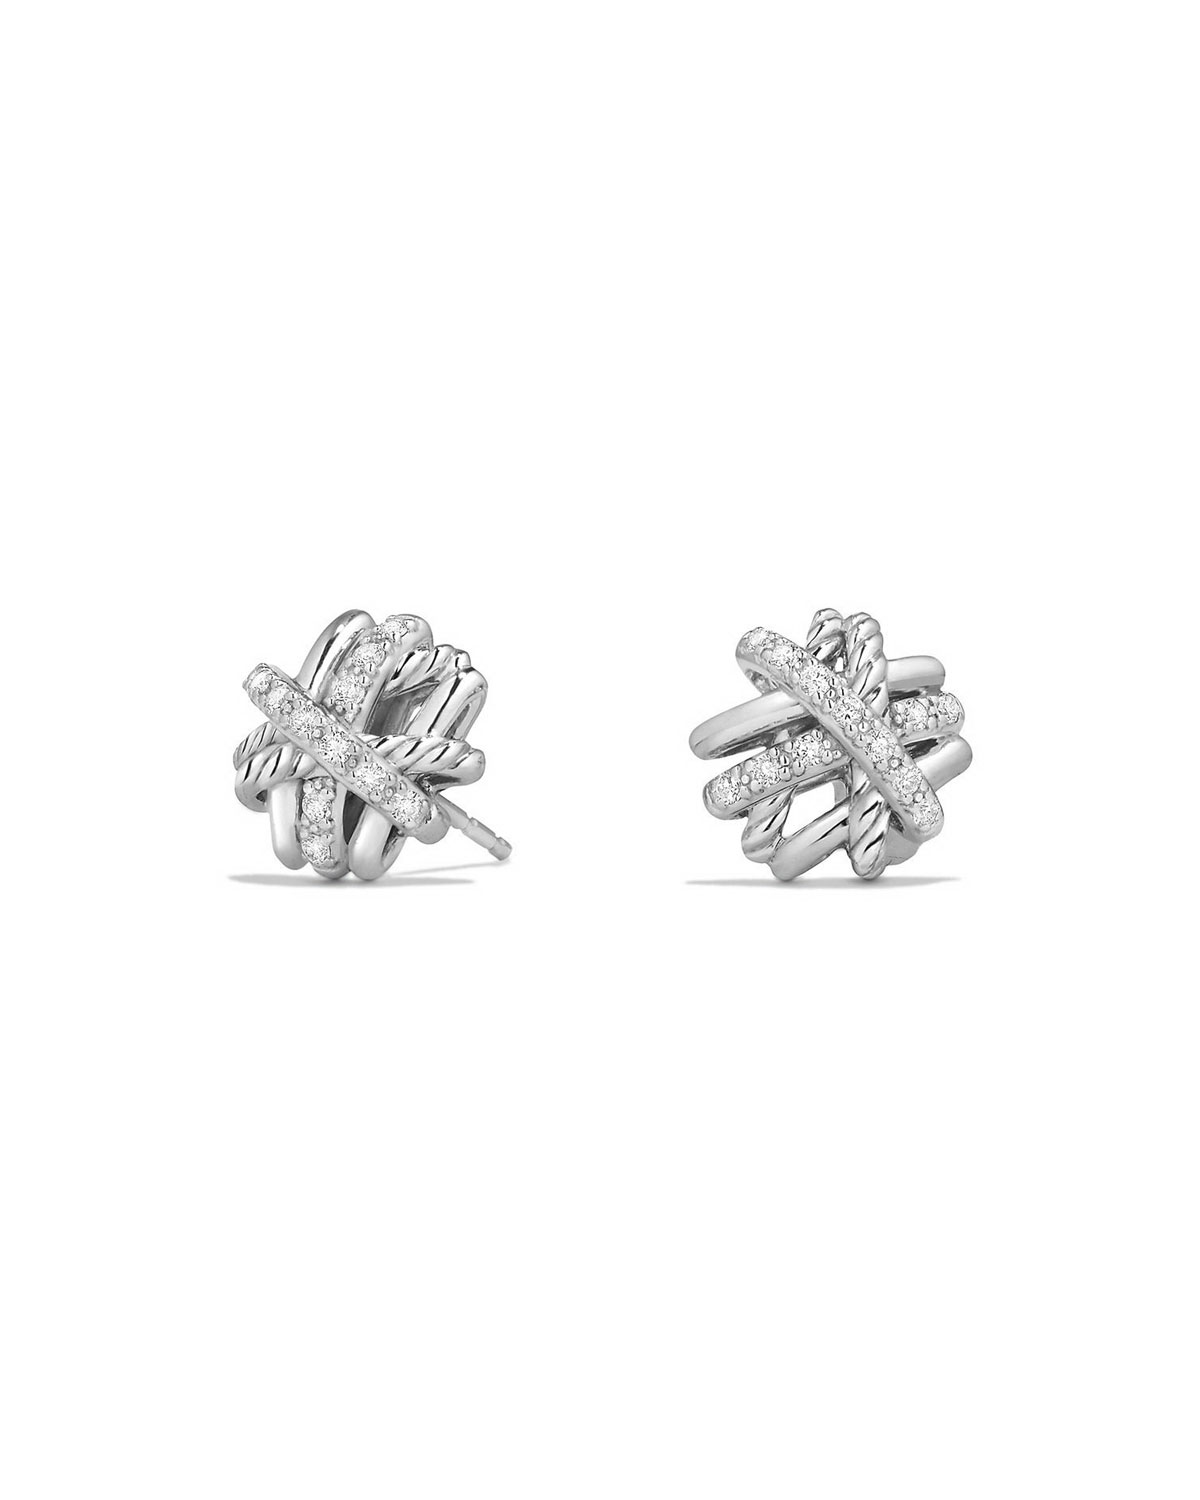 Crossover Sterling Silver Earrings with Diamonds